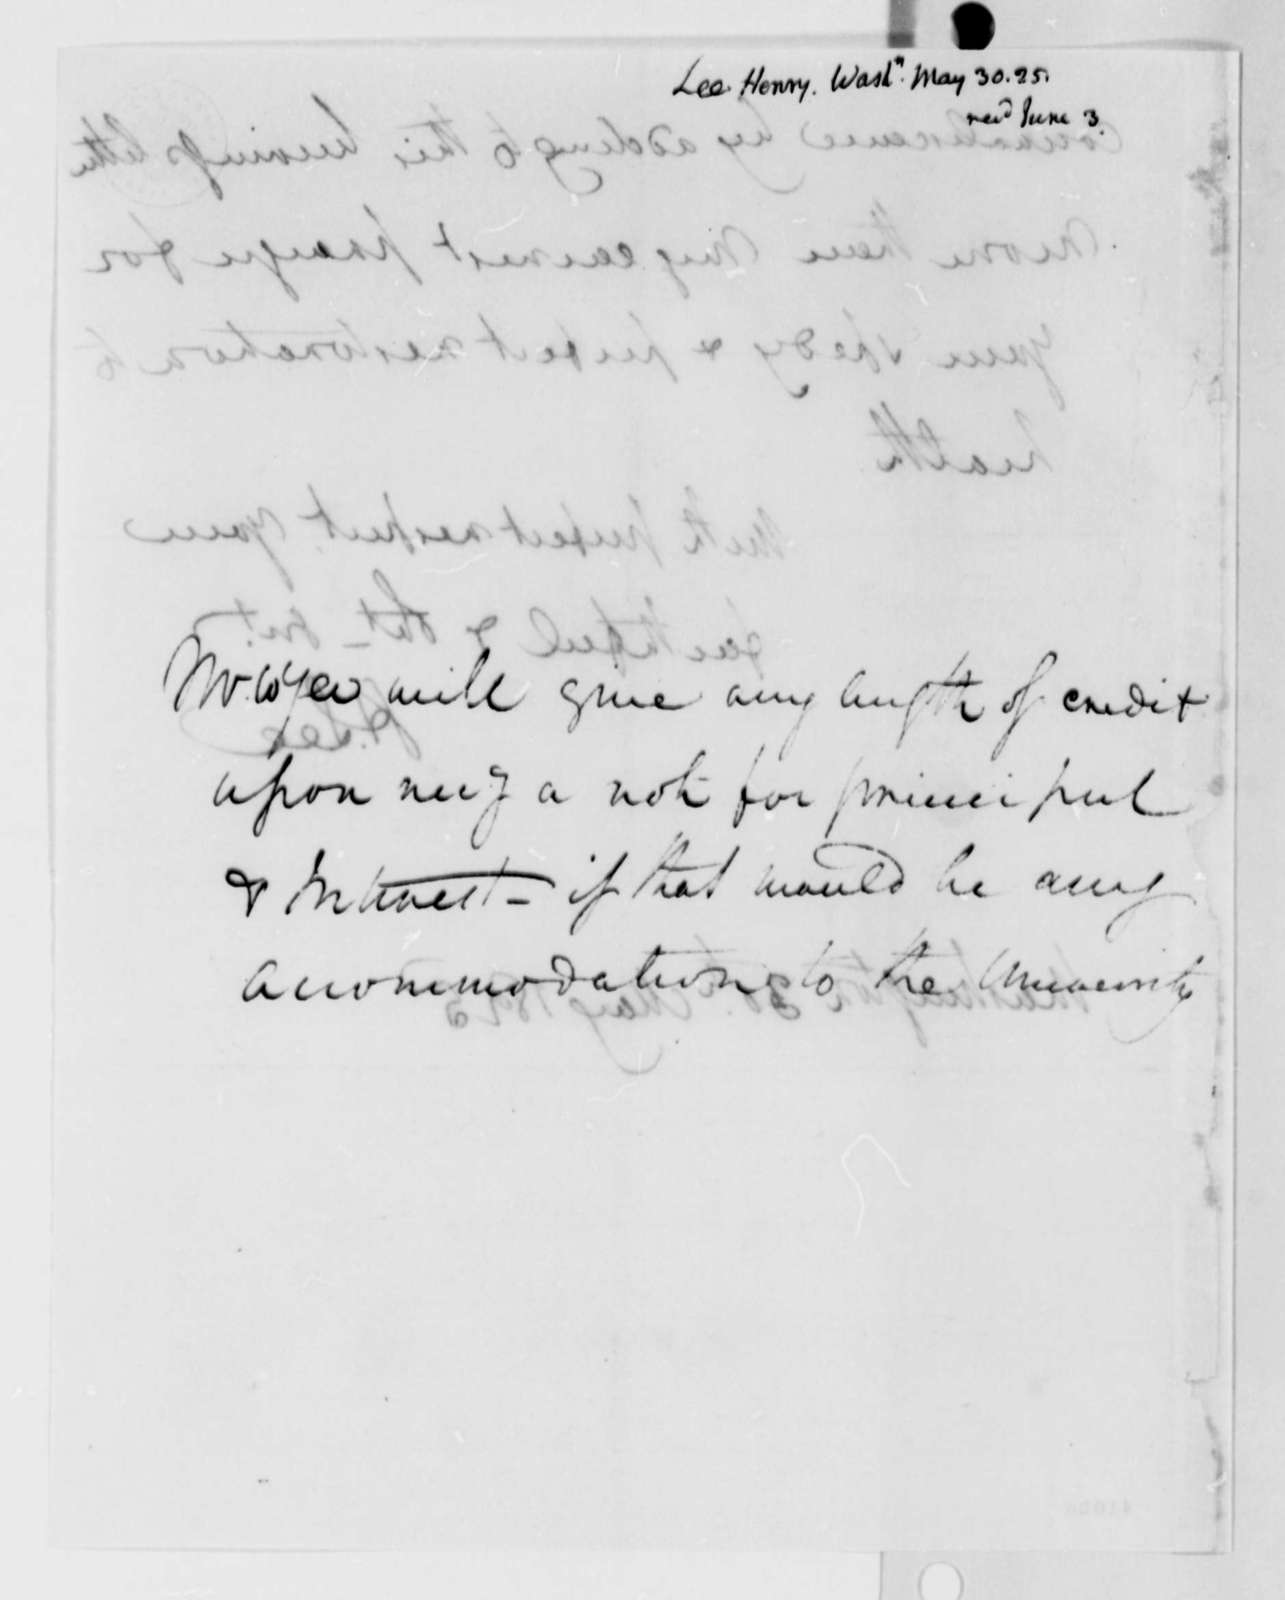 Henry Lee, Jr. to Thomas Jefferson, May 30, 1825